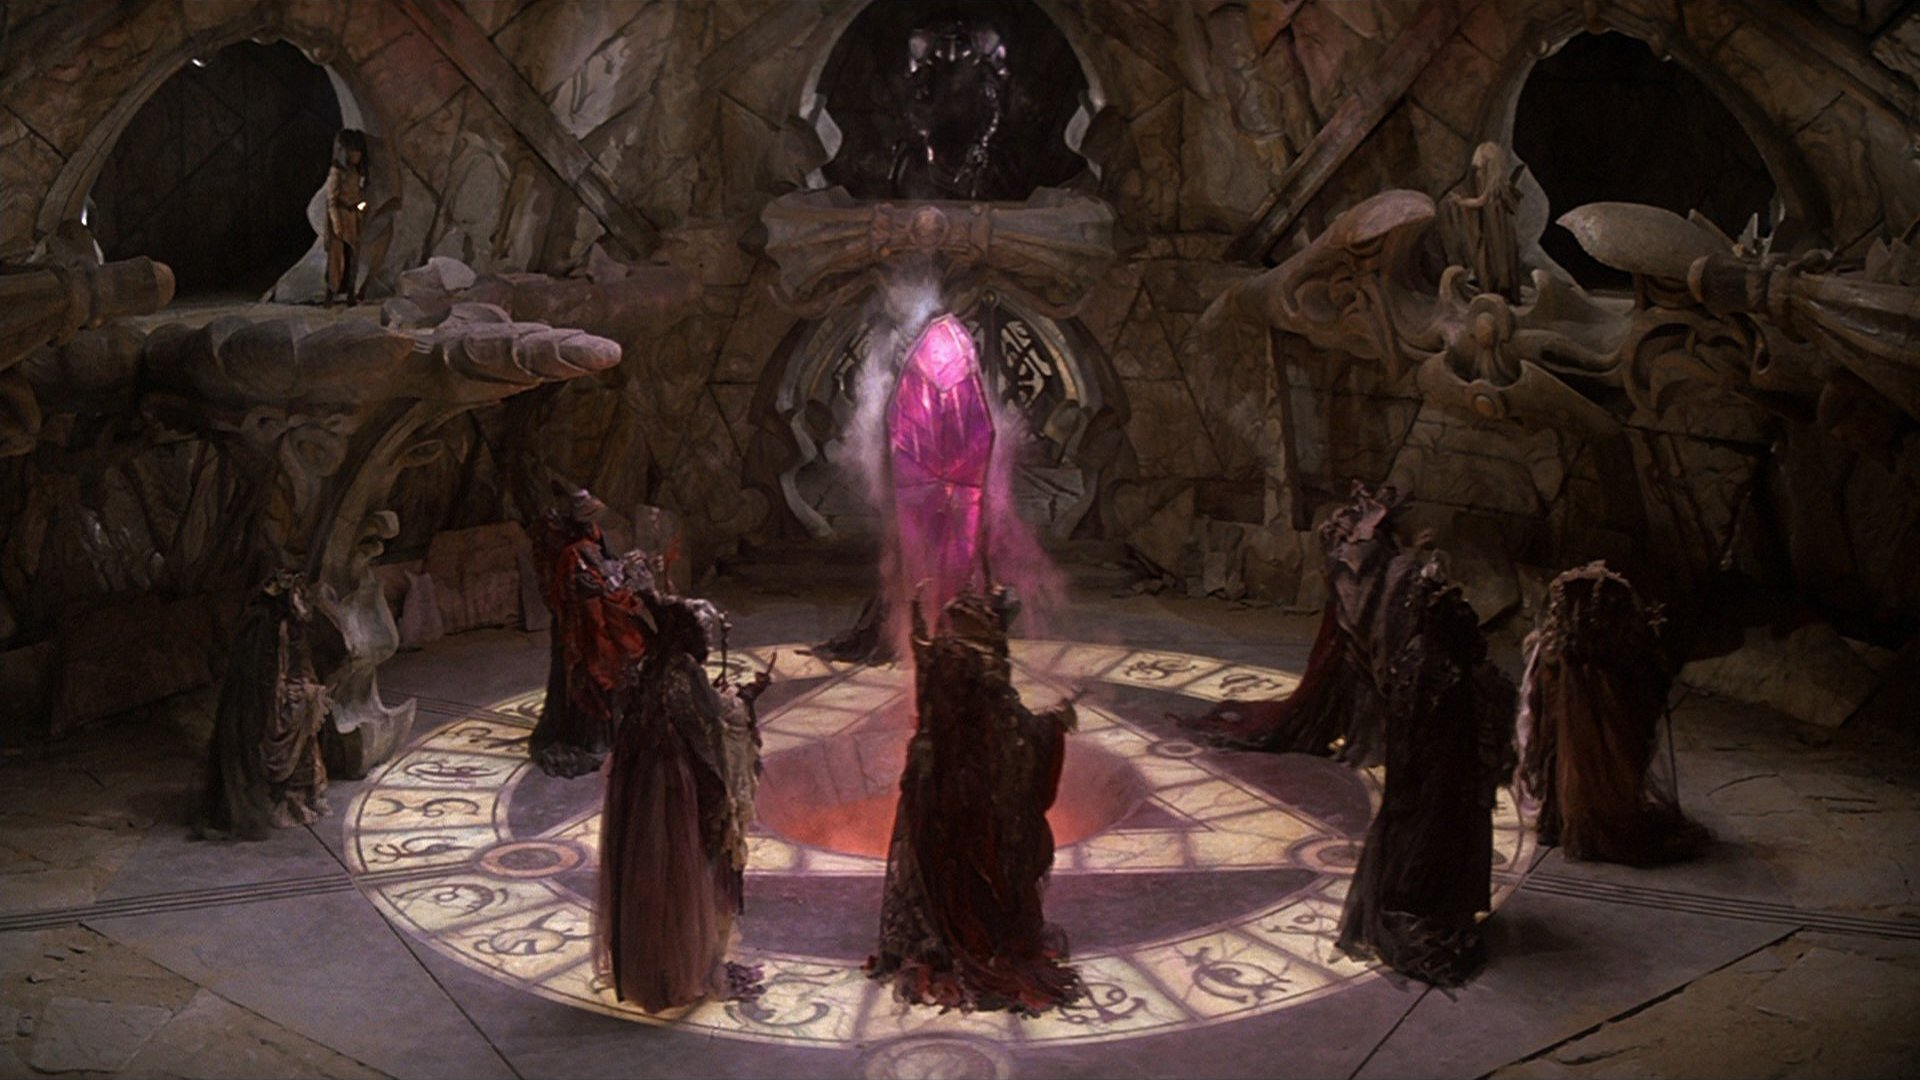 The Mystics in The Dark Crystal (1982)